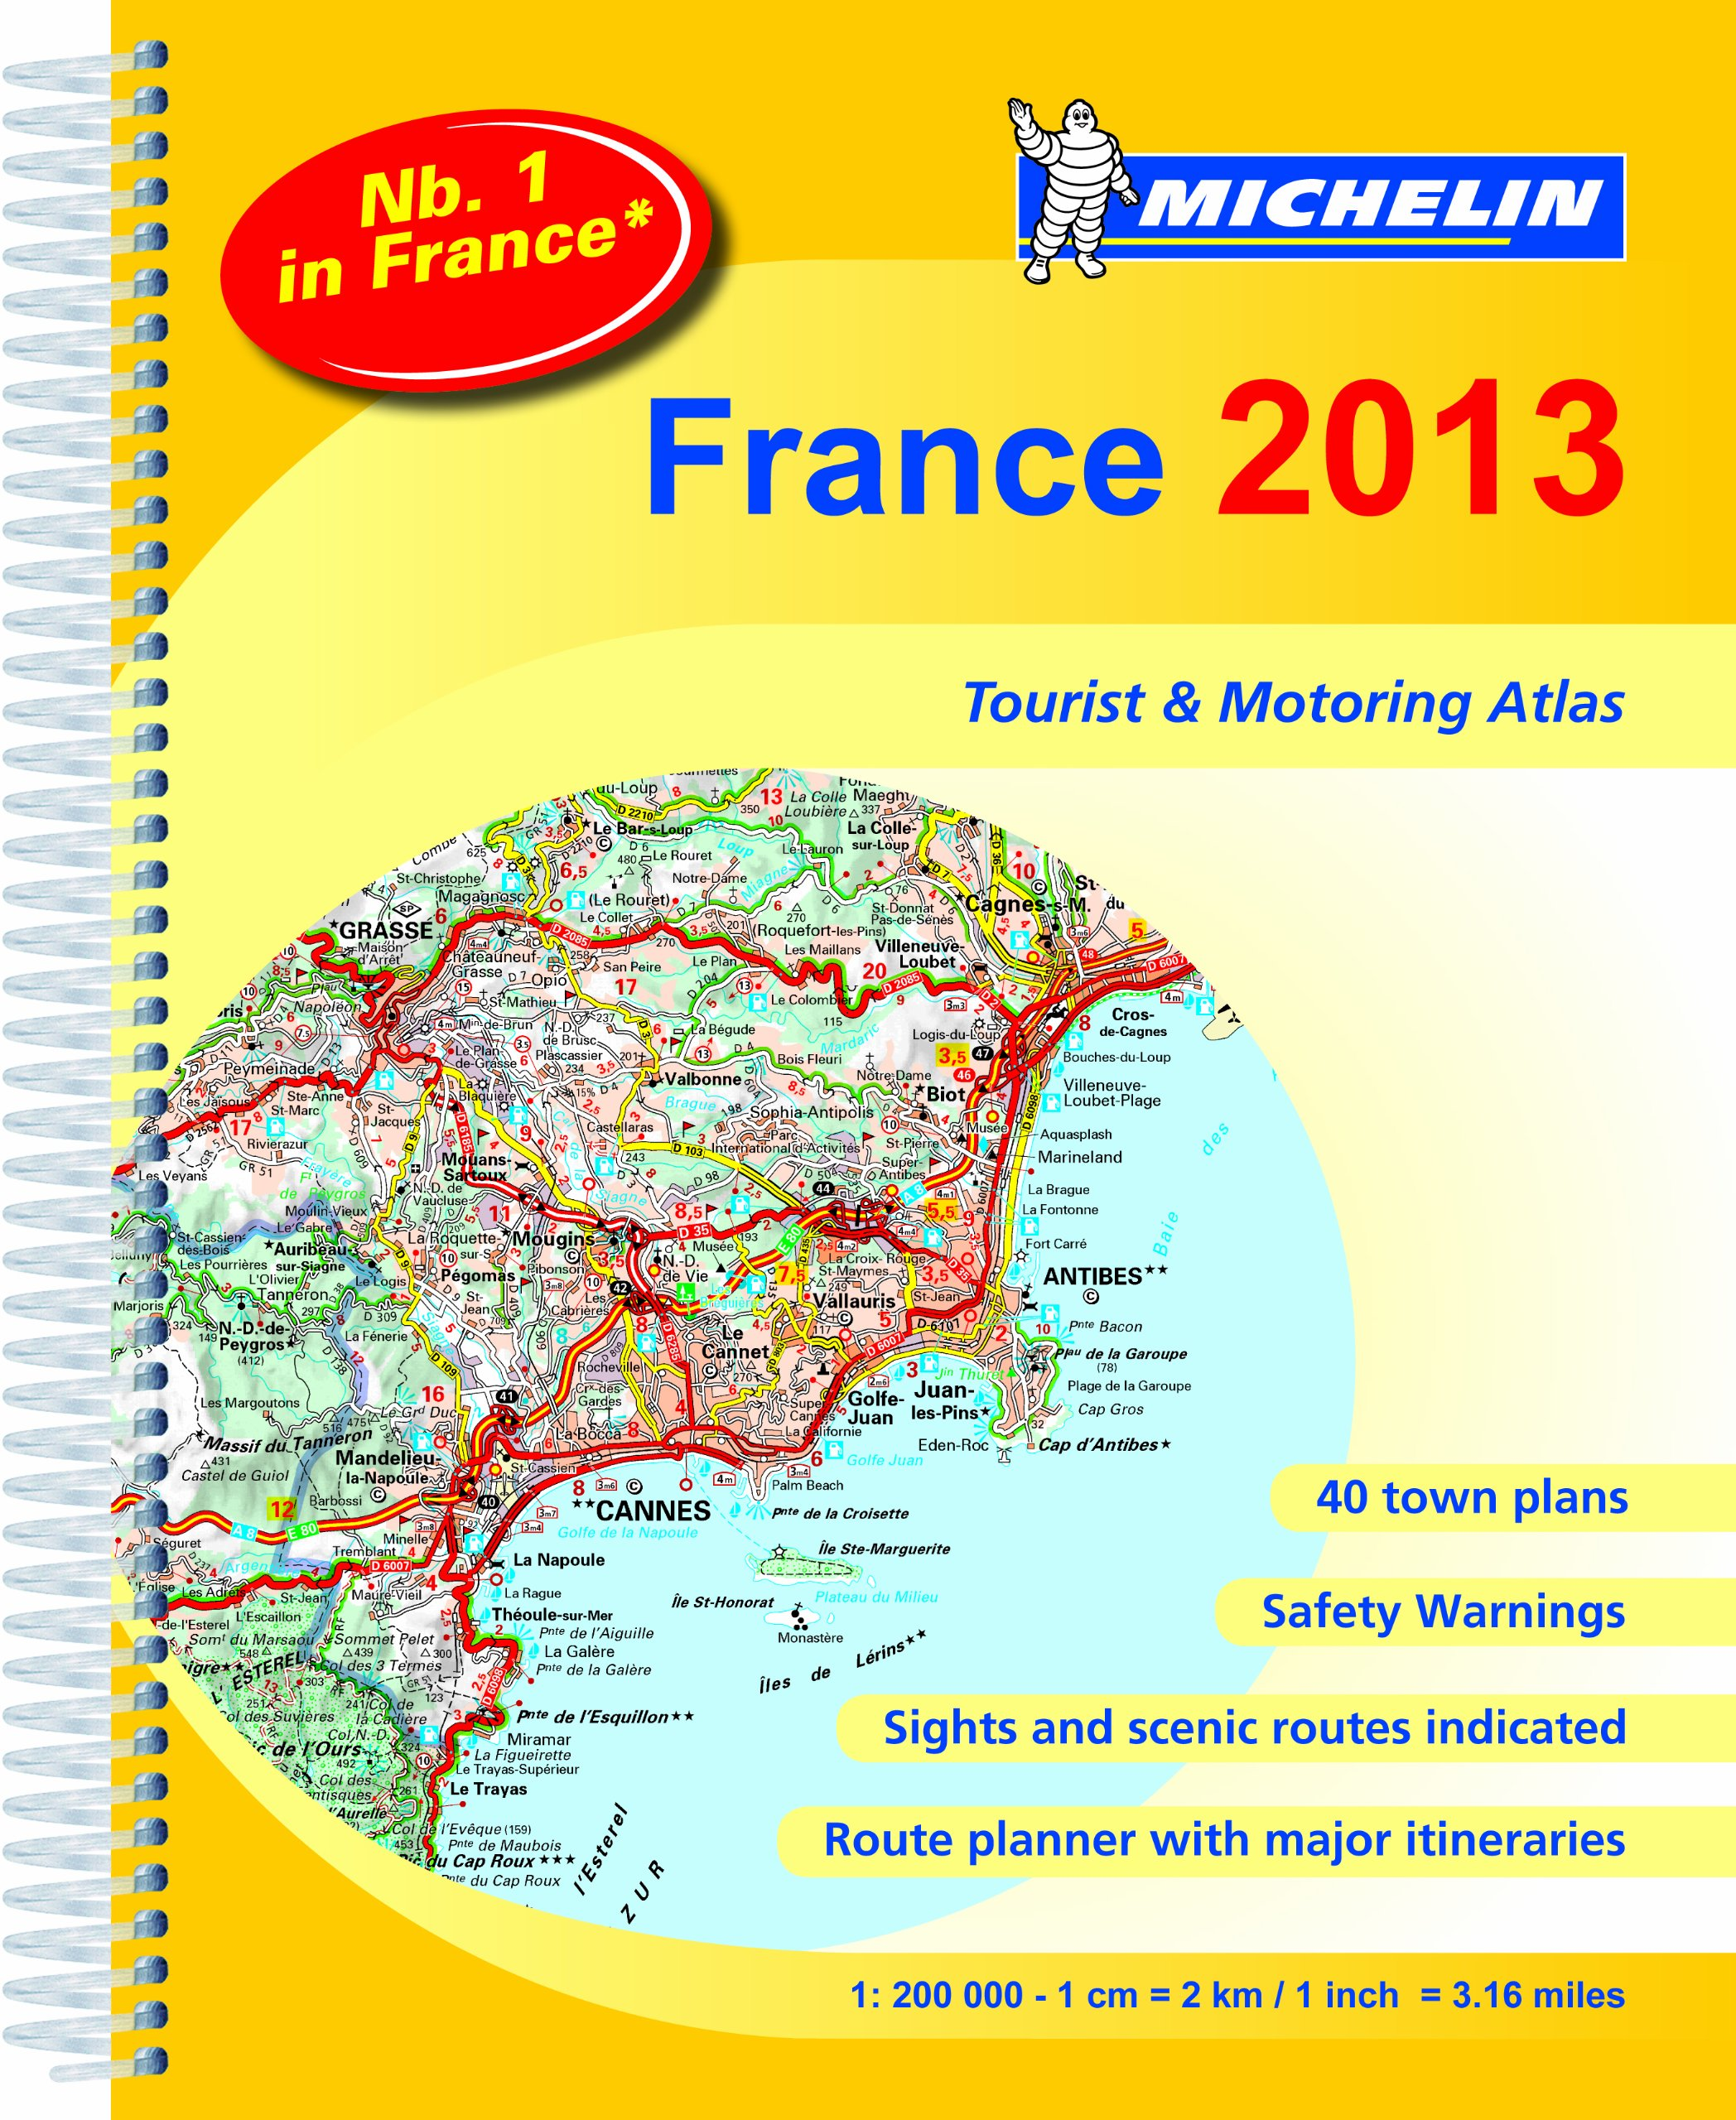 France Atlas 2013: Tourist and Motorist Atlas (Michelin Tourist and Motoring Atlases)